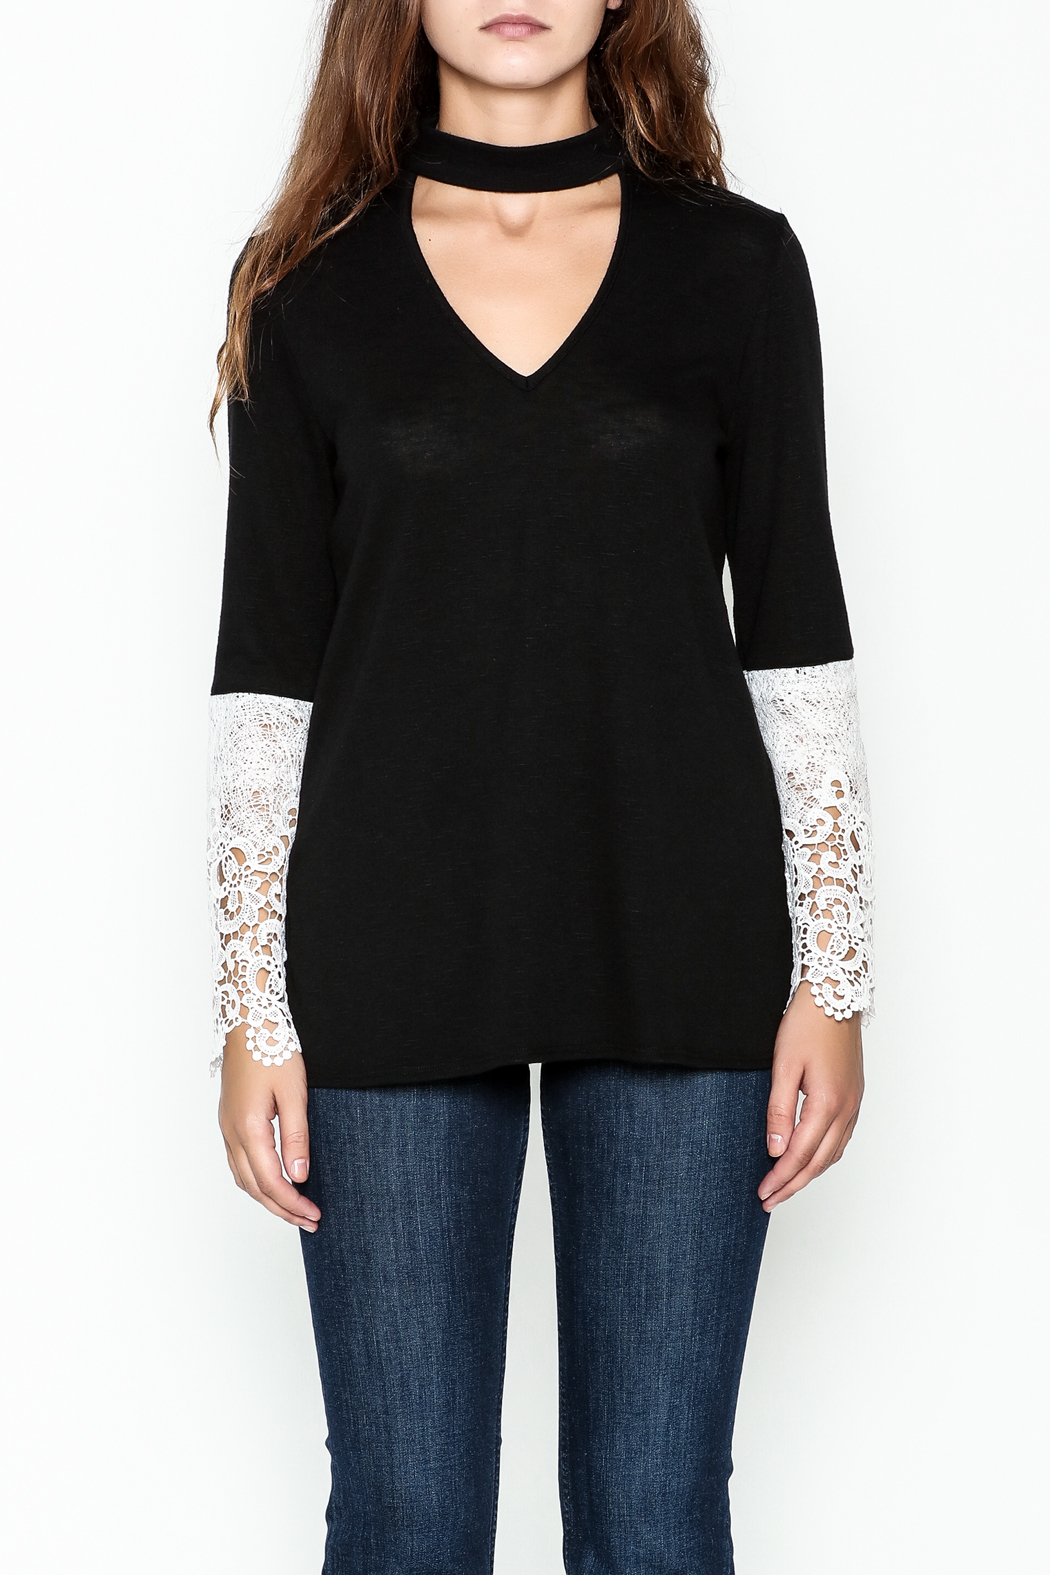 Kay Celine Danielle Cut Out Top - Front Full Image